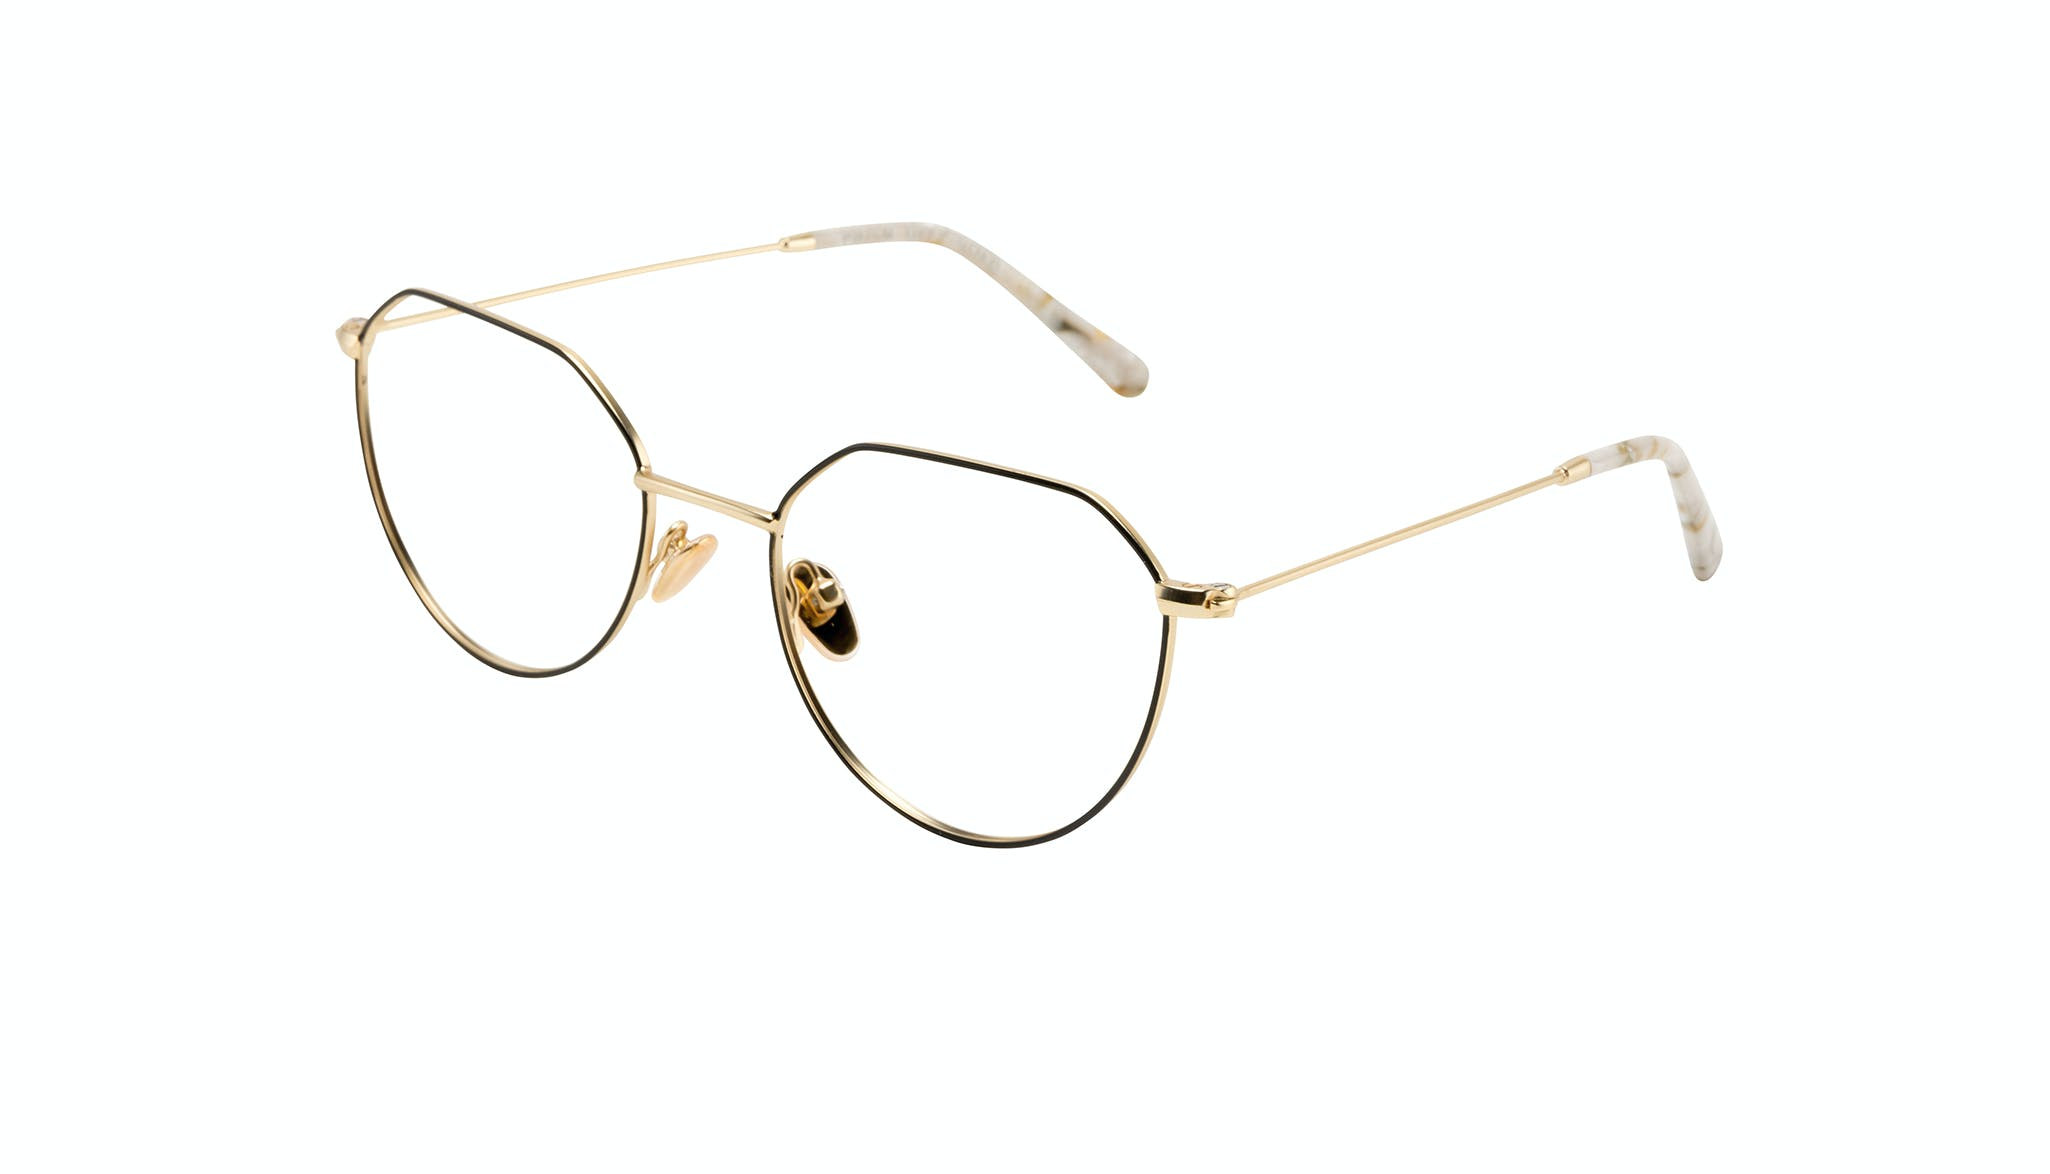 Affordable Fashion Glasses Round Eyeglasses Women Prism Deep Gold Tilt